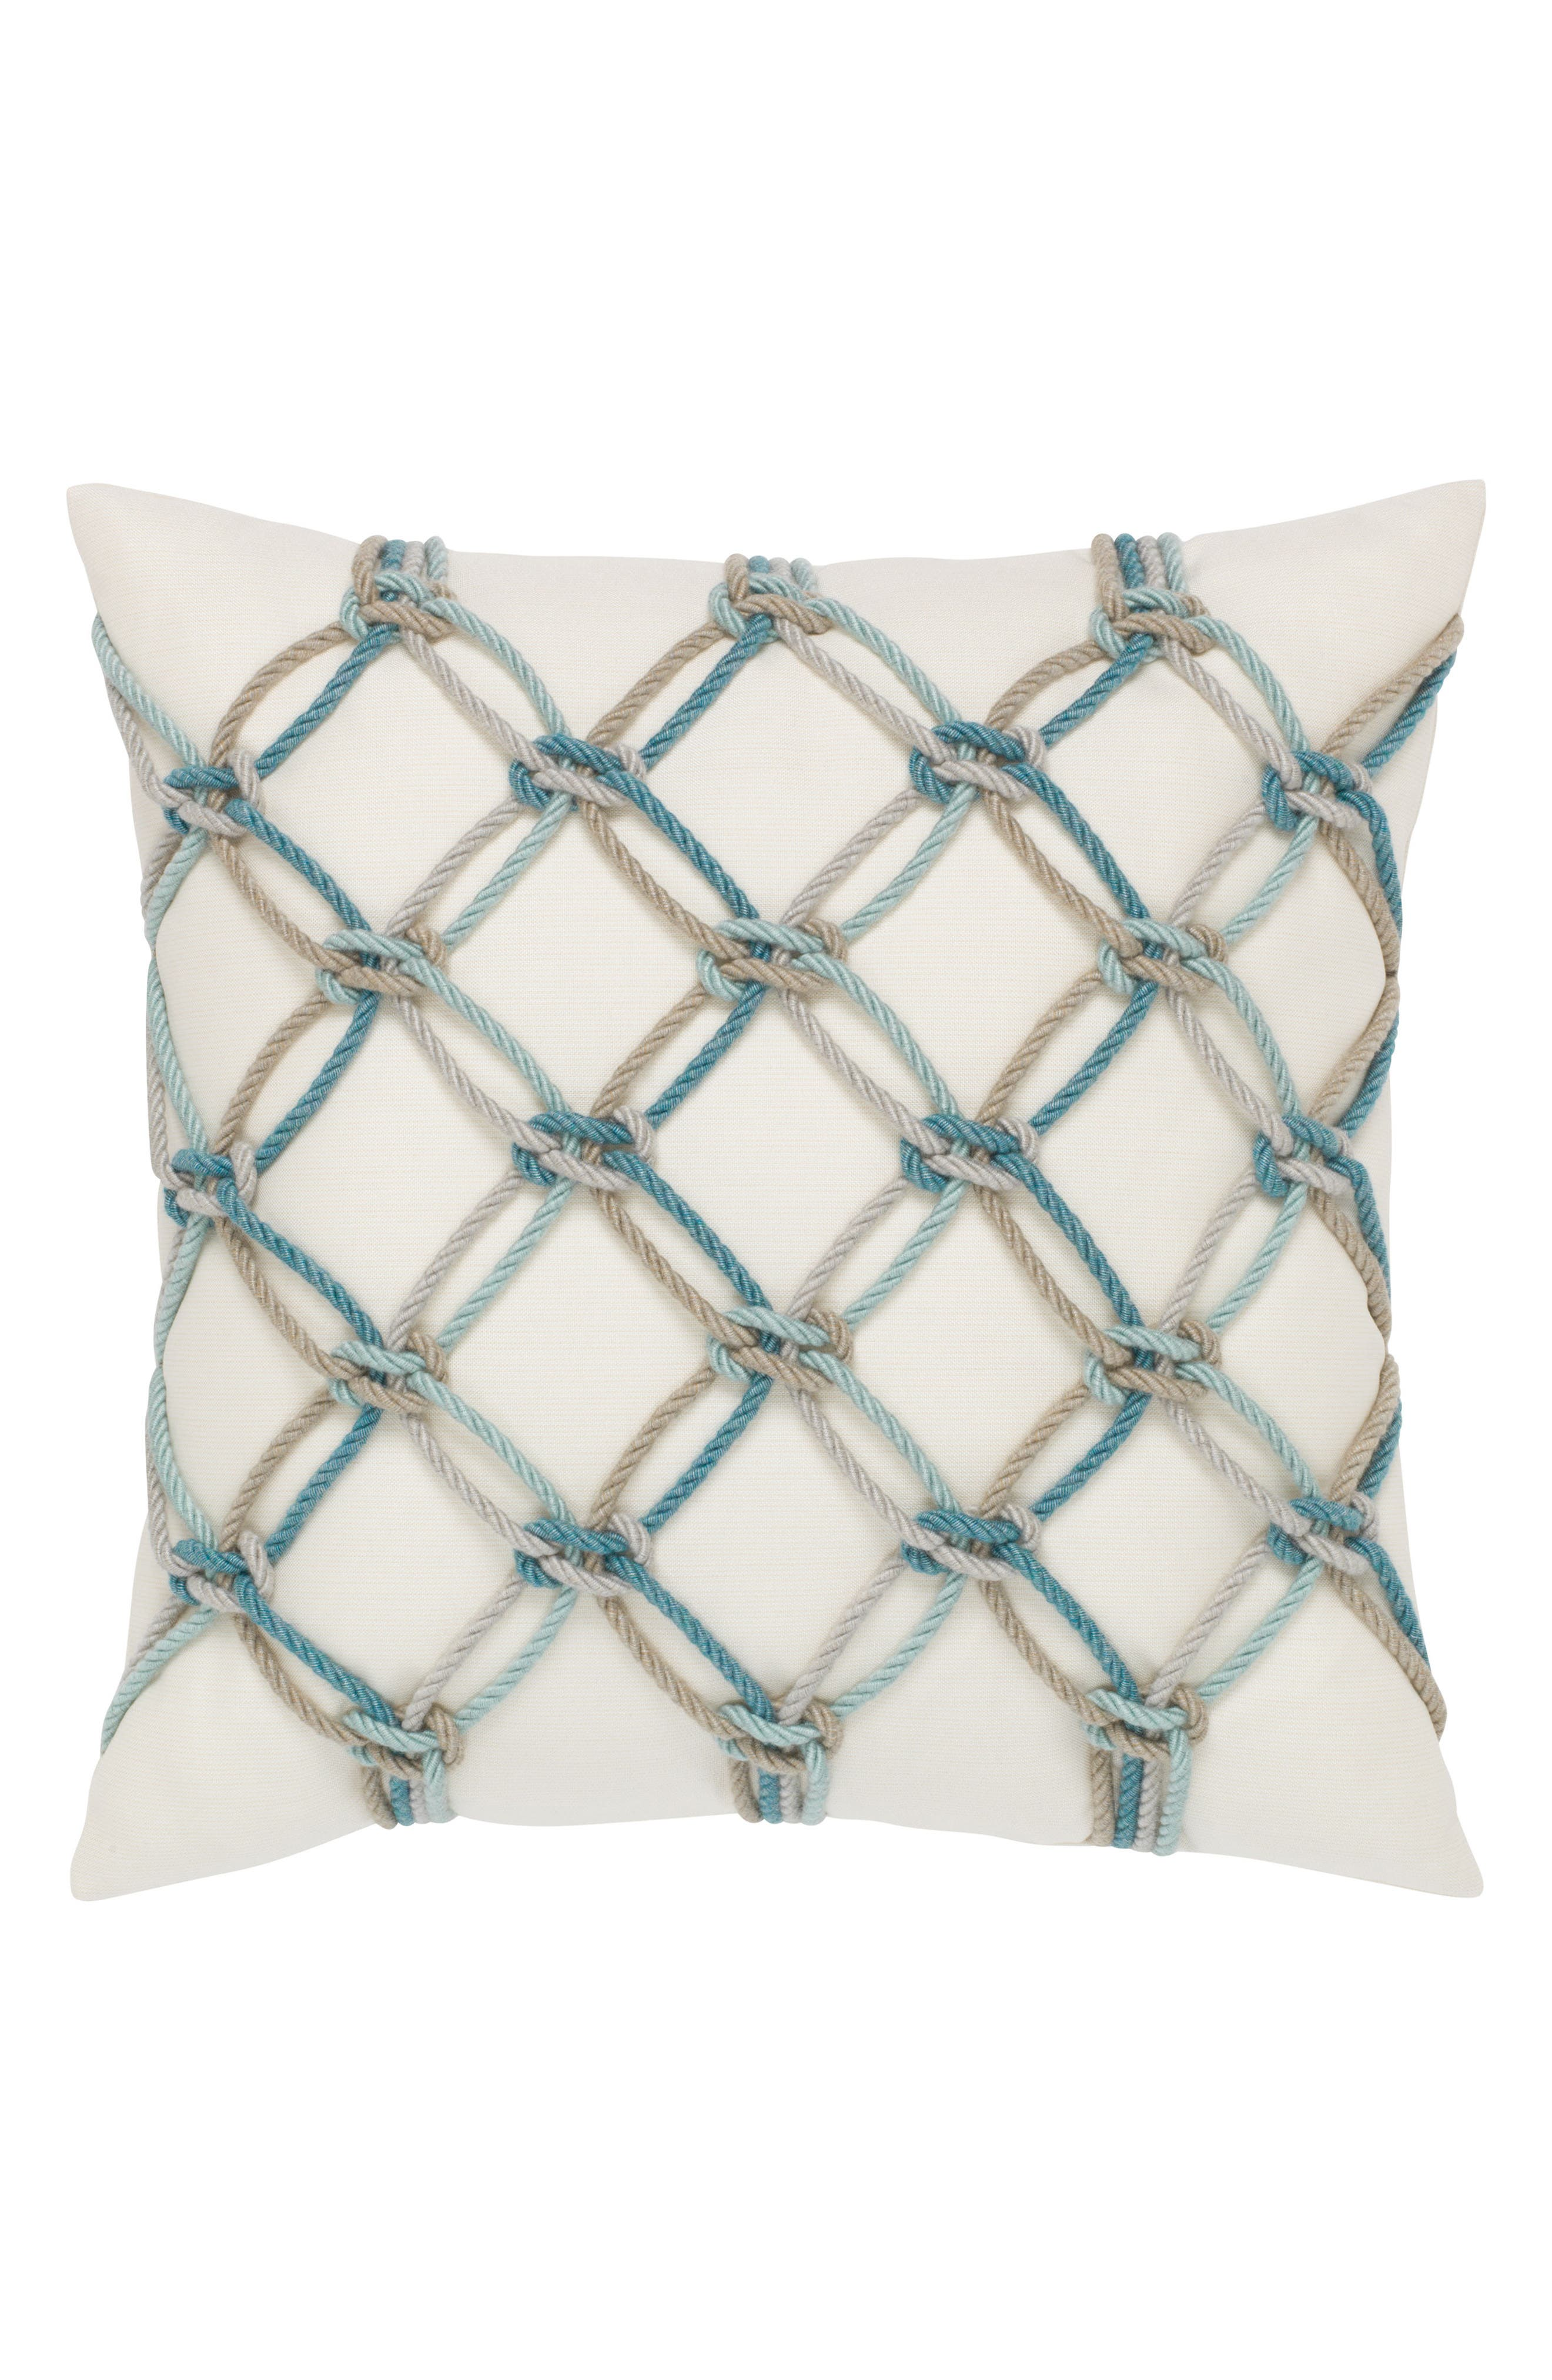 Aqua Rope Indoor/Outdoor Accent Pillow,                             Main thumbnail 1, color,                             White/ Blue